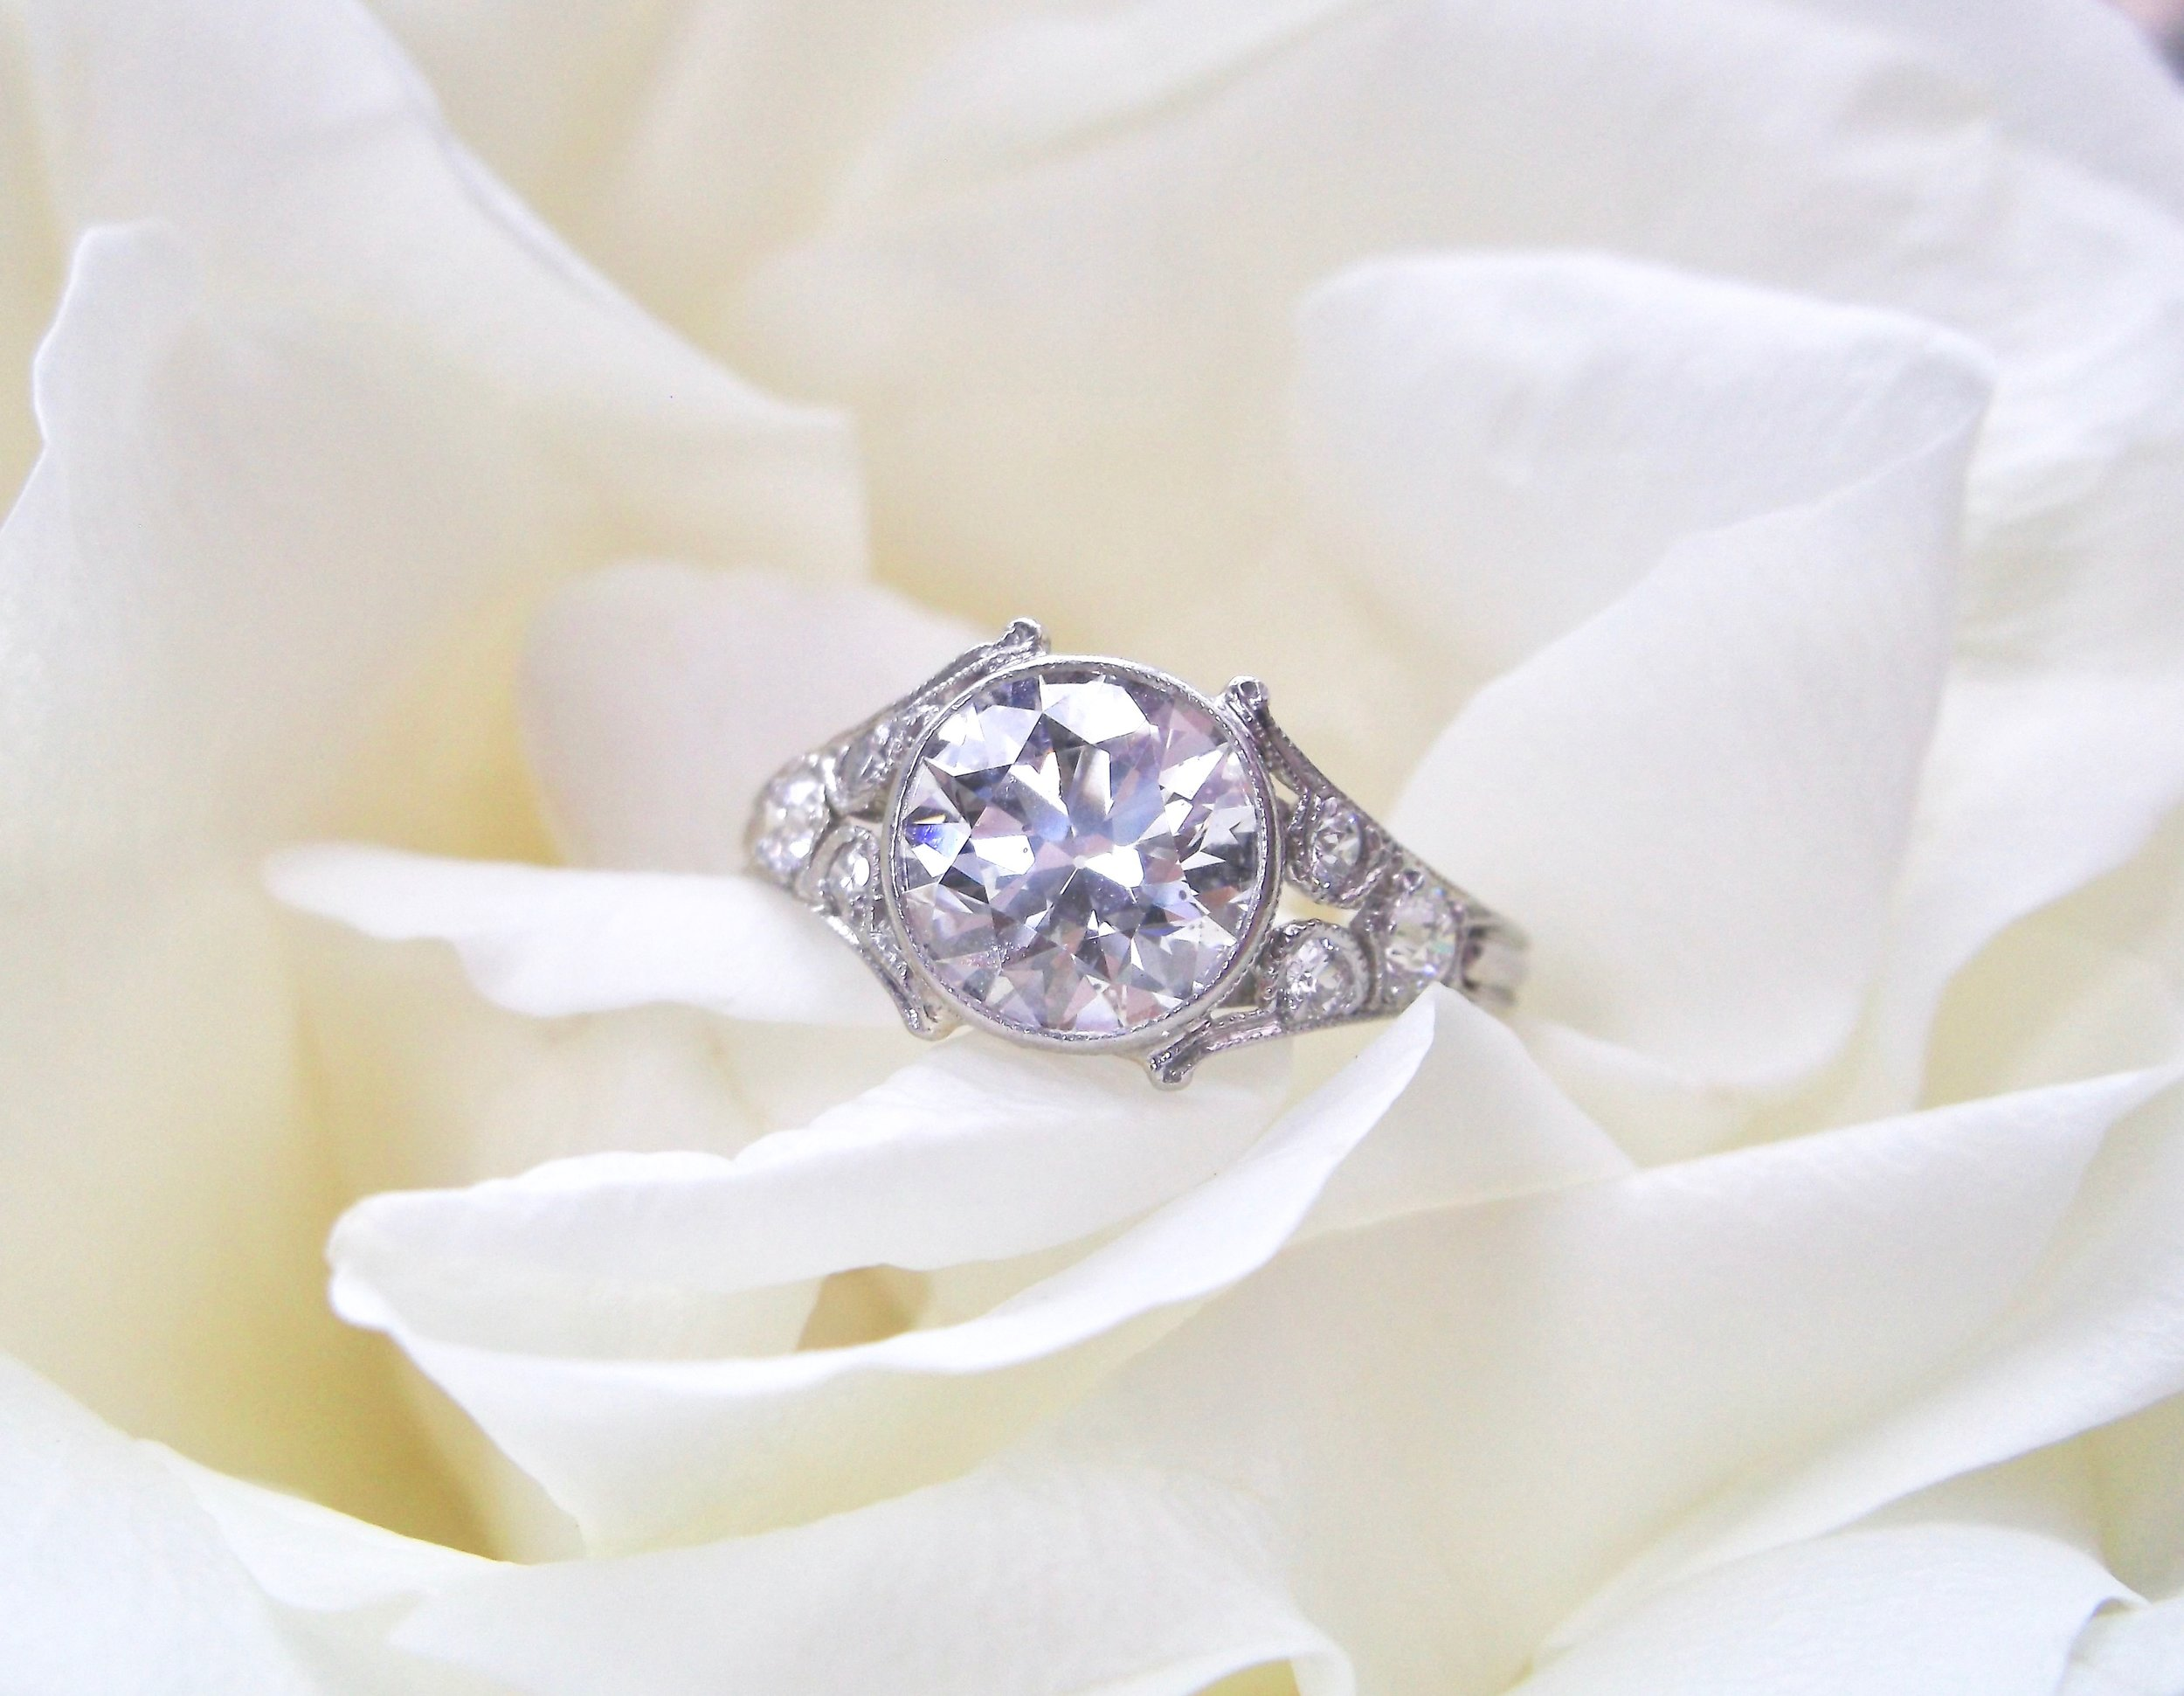 Tiffany & Co. stands the test of time.  The perfect example? This fabulous 2.05 carat Old European cut diamond and platinum ring circa 1920. Shop this gorgeous ring  HERE.